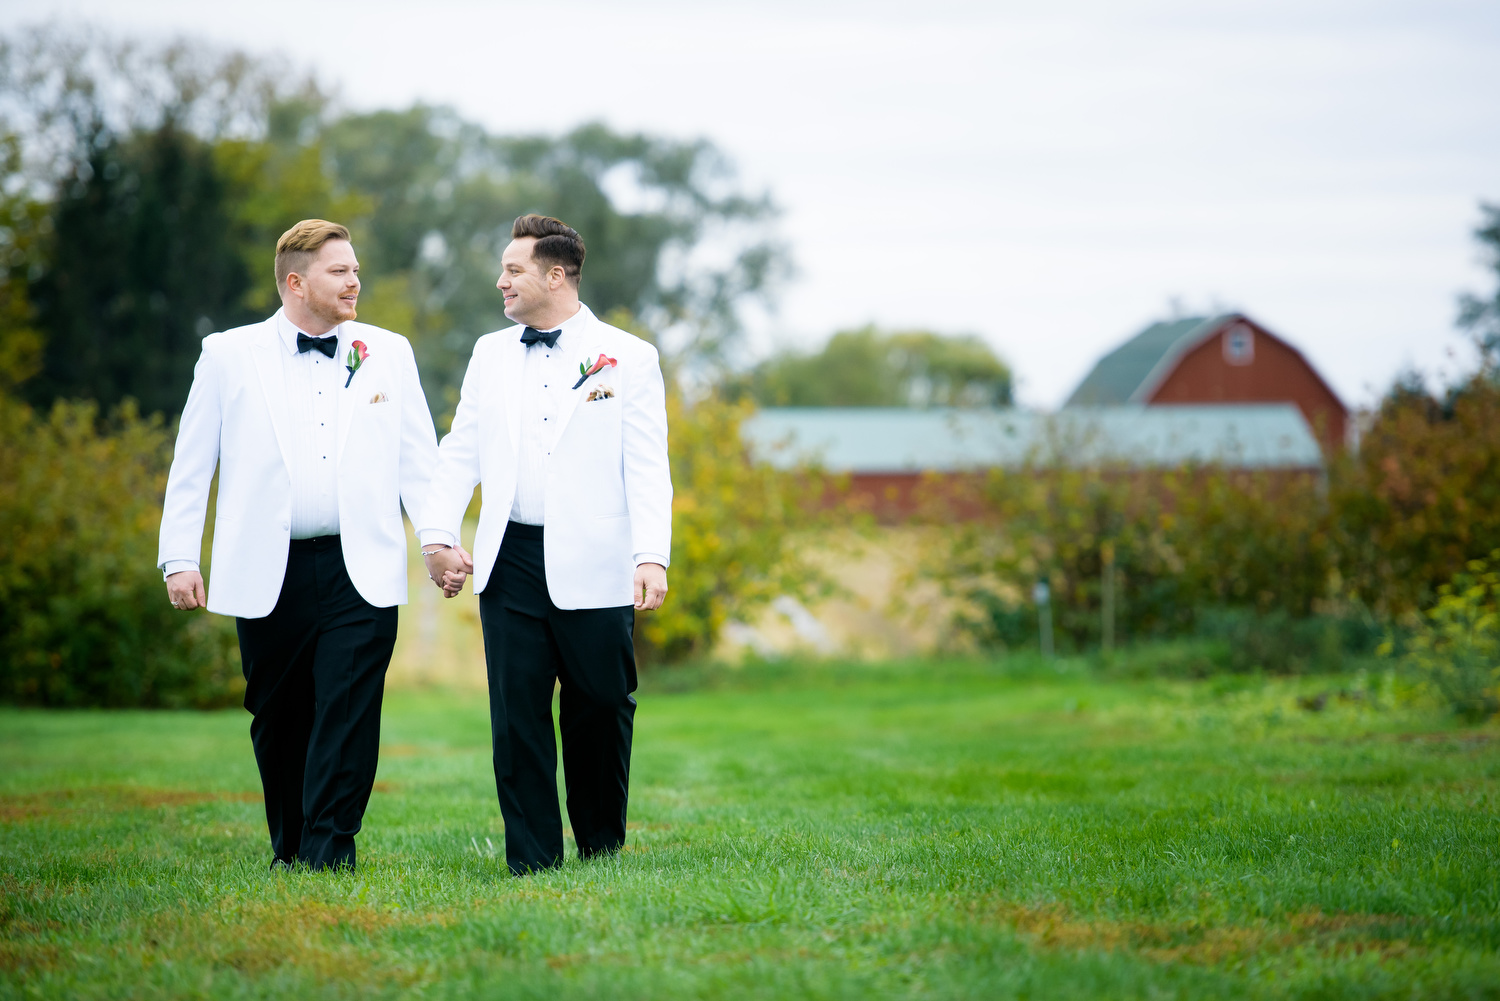 Portrait of the grooms at Heritage Prairie Farm during their wedding.